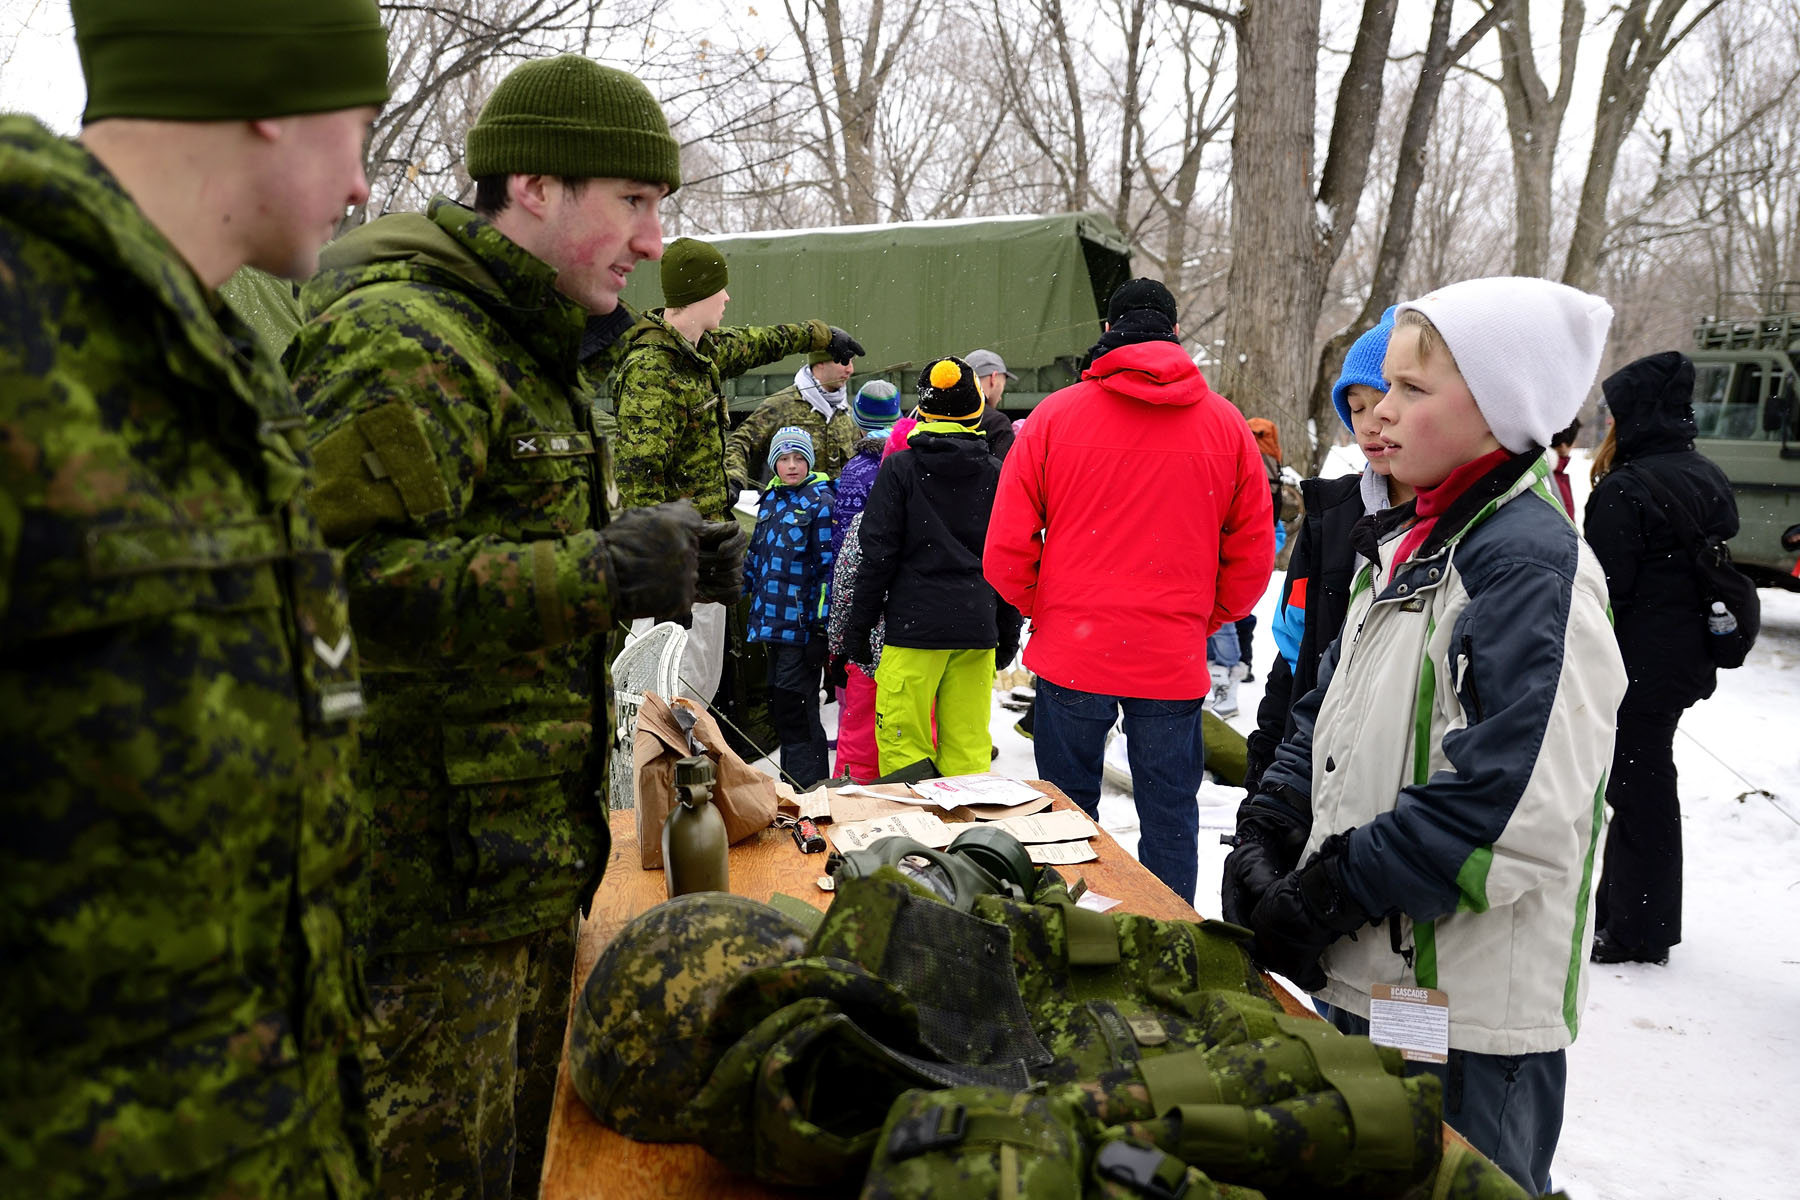 Members of the Governor General's Foot Guards introduced visitors to some of their training exercises with a fun obstacle course and demonstrated how a military camp is set up for winter.